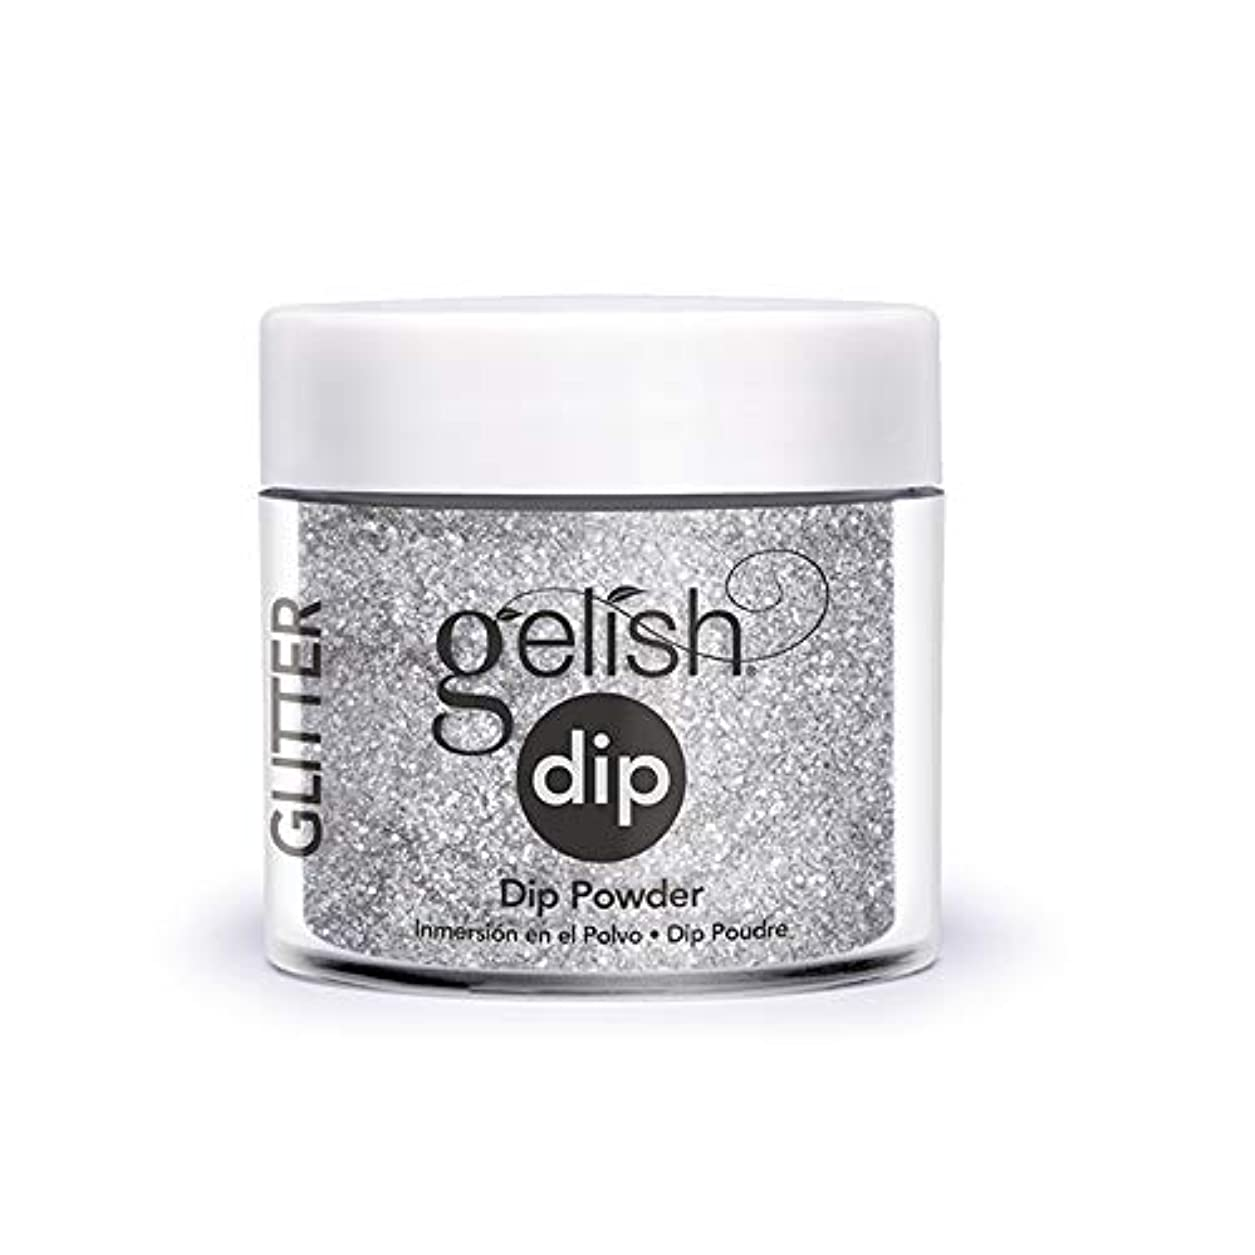 加速度たくさん用語集Harmony Gelish - Acrylic Dip Powder - Time to Shine - 23g / 0.8oz